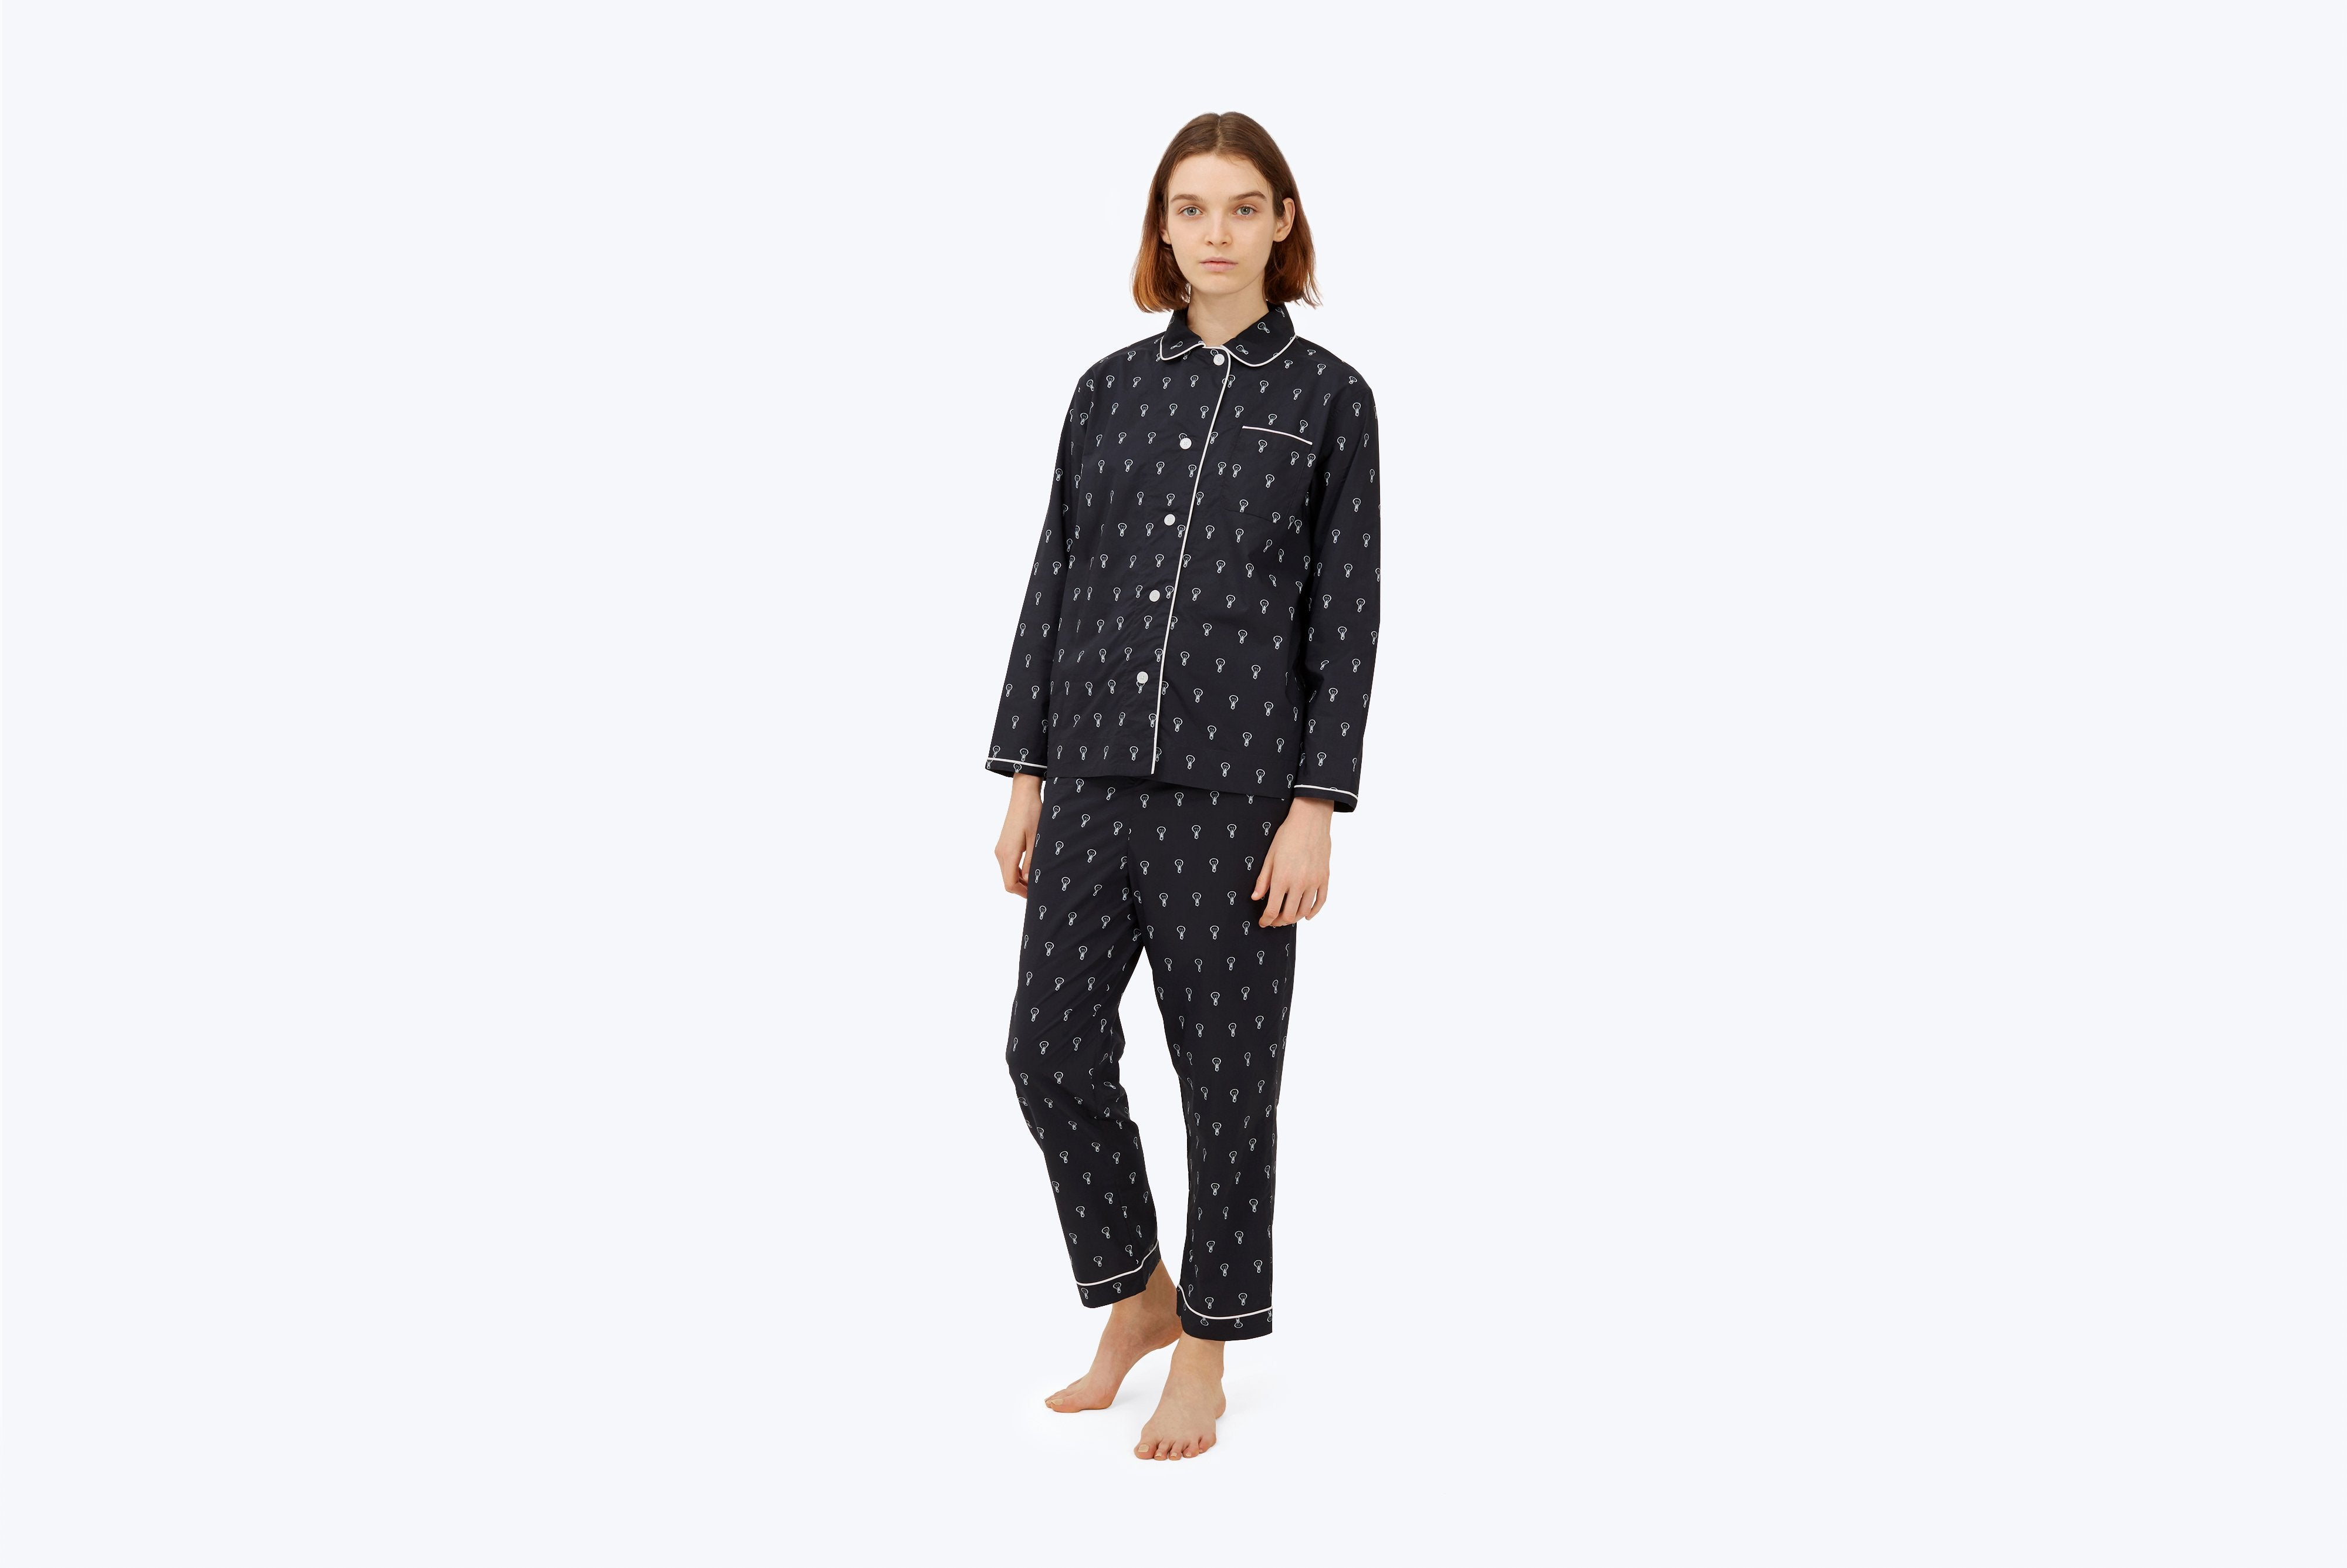 DLF Bishop Pajama Set